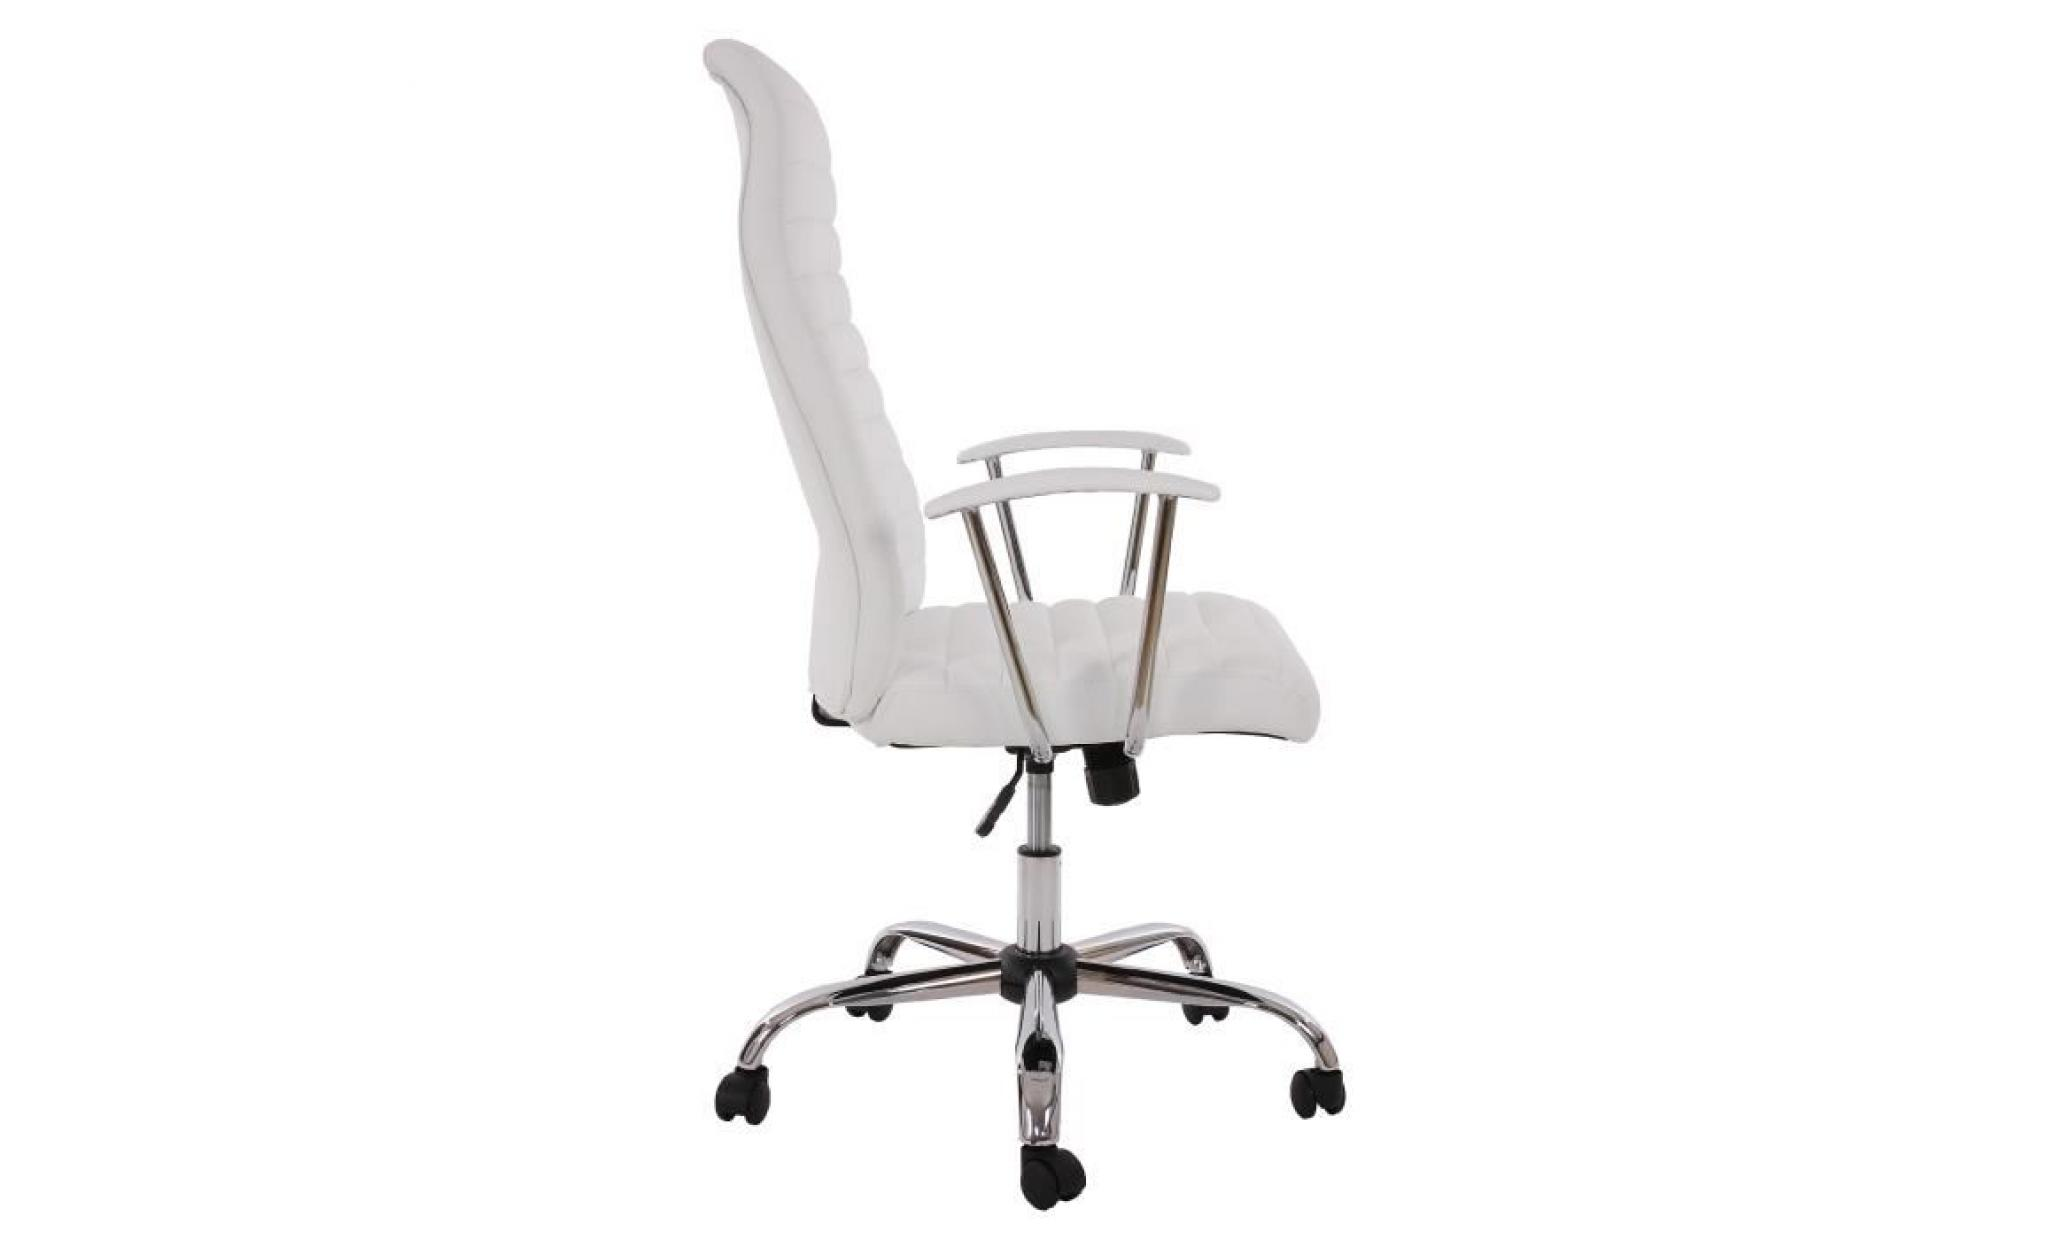 fauteuil chaise de bureau cagliari ergonomique pu blanc achat vente faut. Black Bedroom Furniture Sets. Home Design Ideas